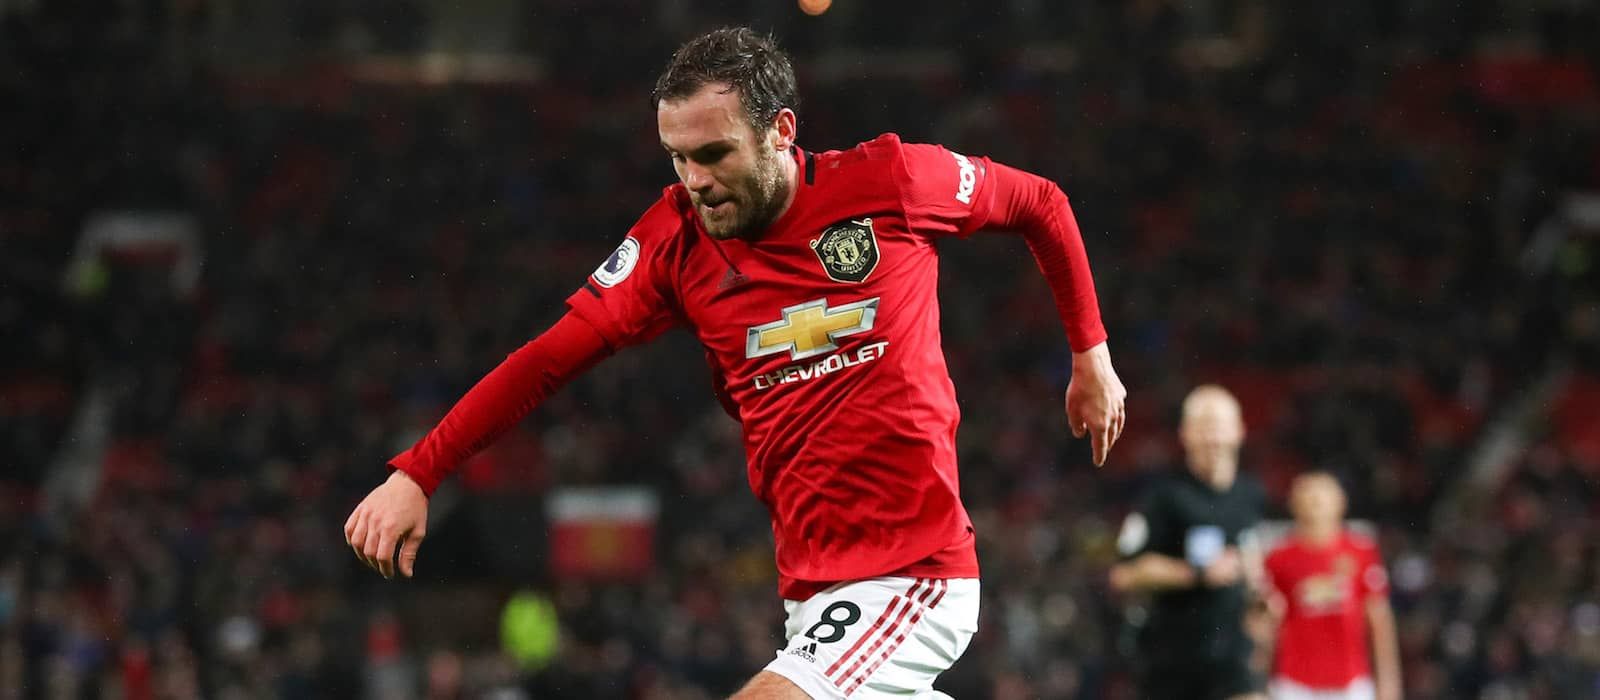 Juan Mata's recent statistics show shocking decline